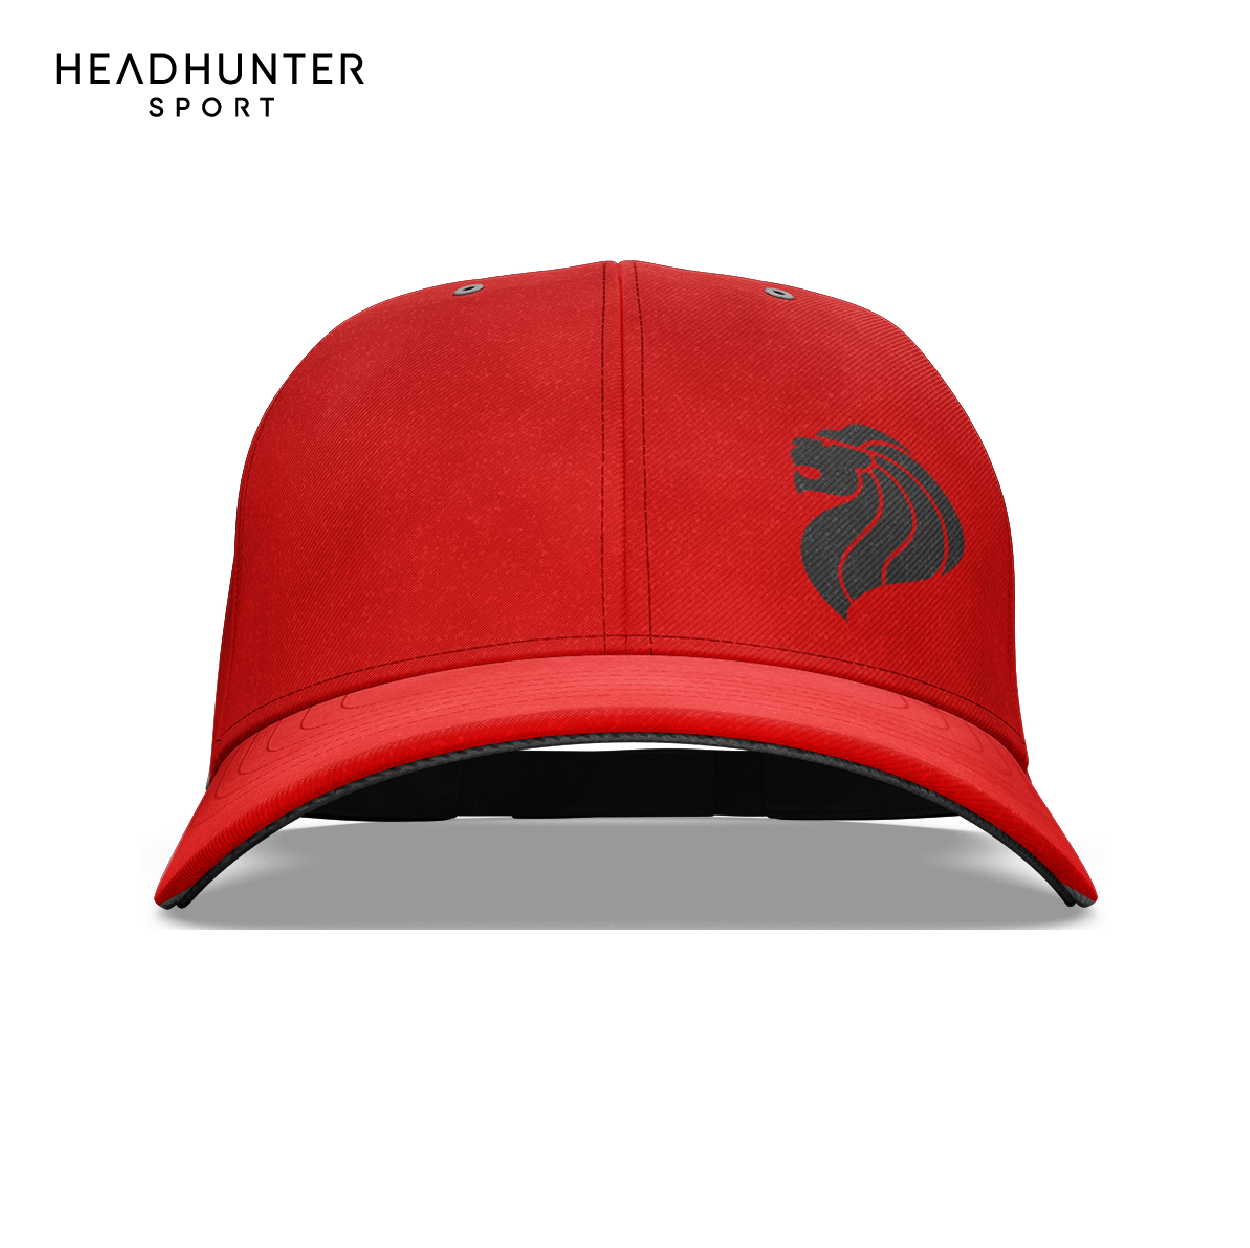 HSBC RUGBY 7S SERIES SINGAPORE 2019 MERCHANDISE BASEBALL CAP